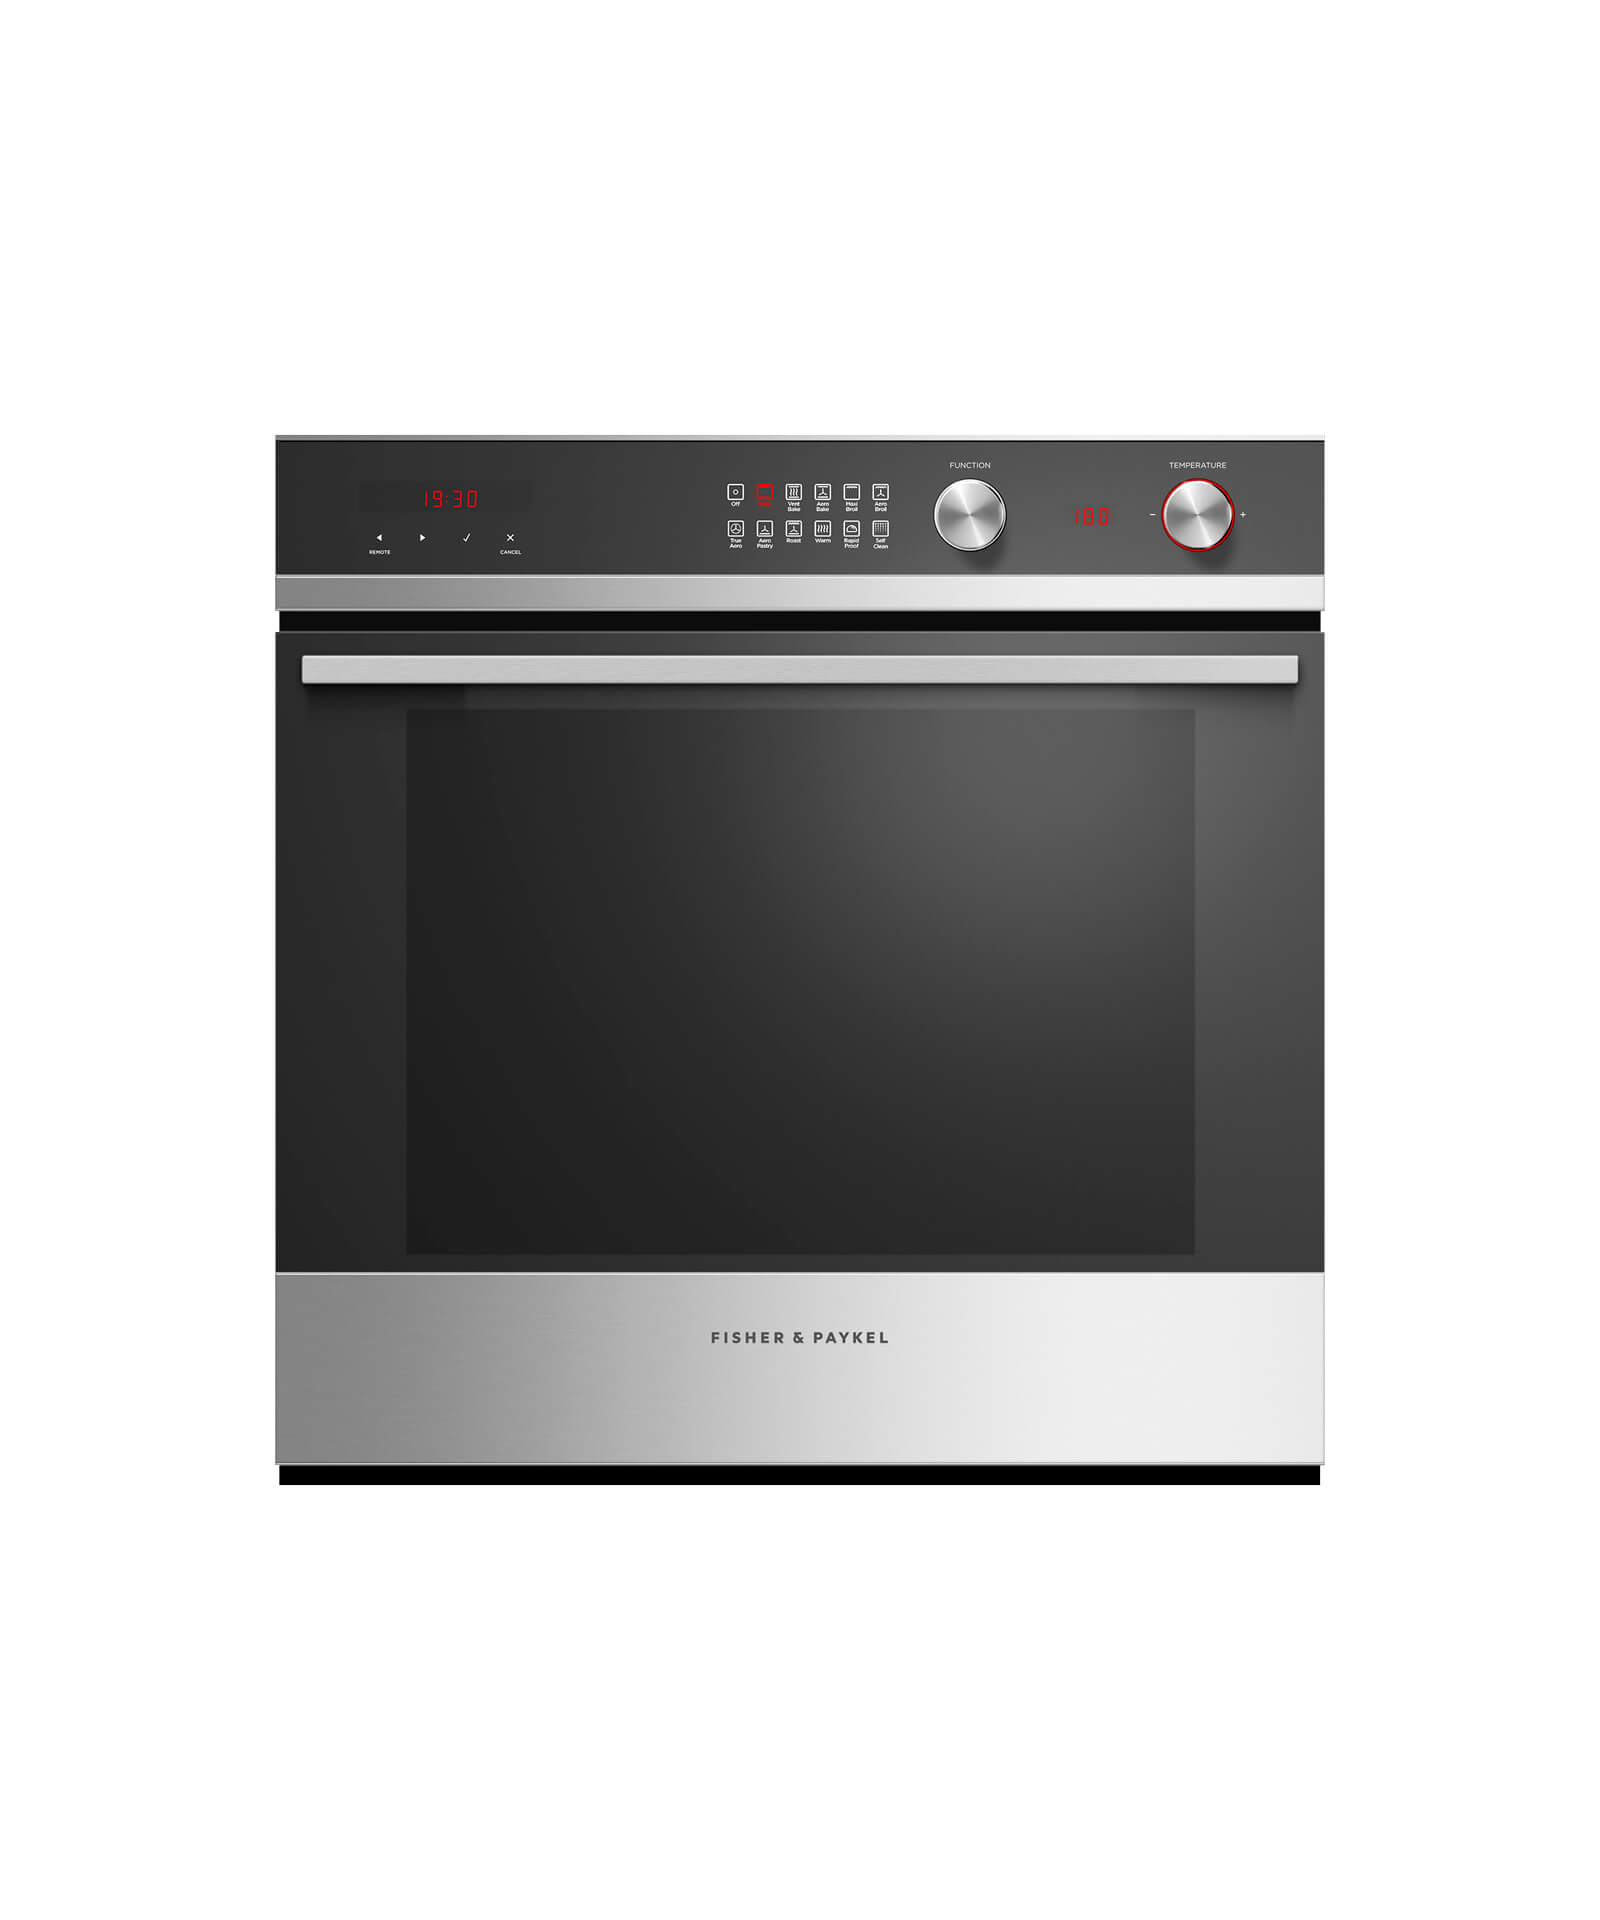 Fisher and Paykel DISPLAY MODEL--Built-in Oven, 24, 3 cu ft, 11 Function, Self-cleaning